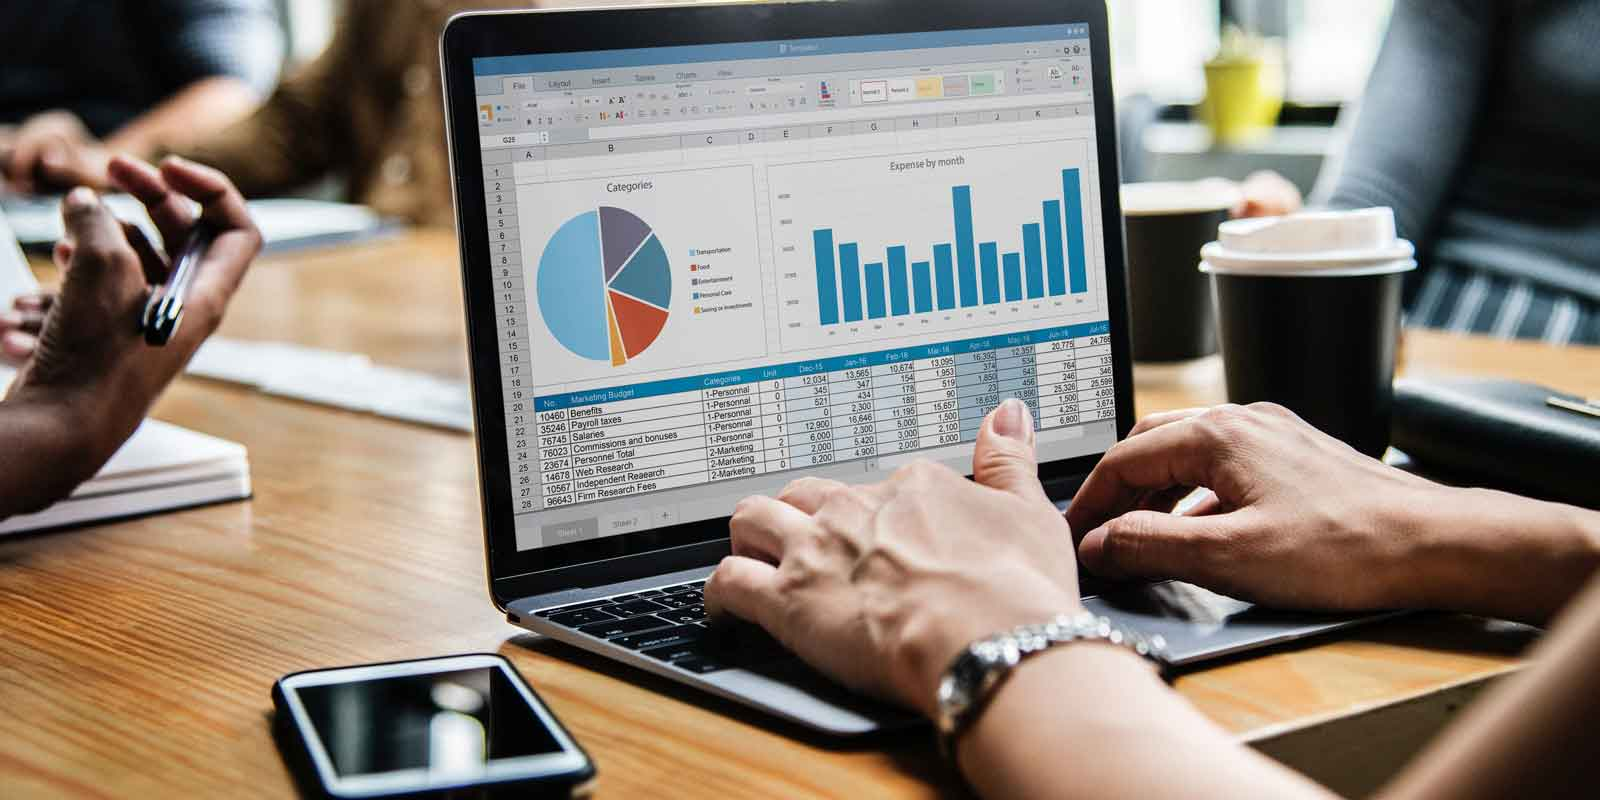 Why Anaplan is different from other Enterprise Performance Management (EPM) Software